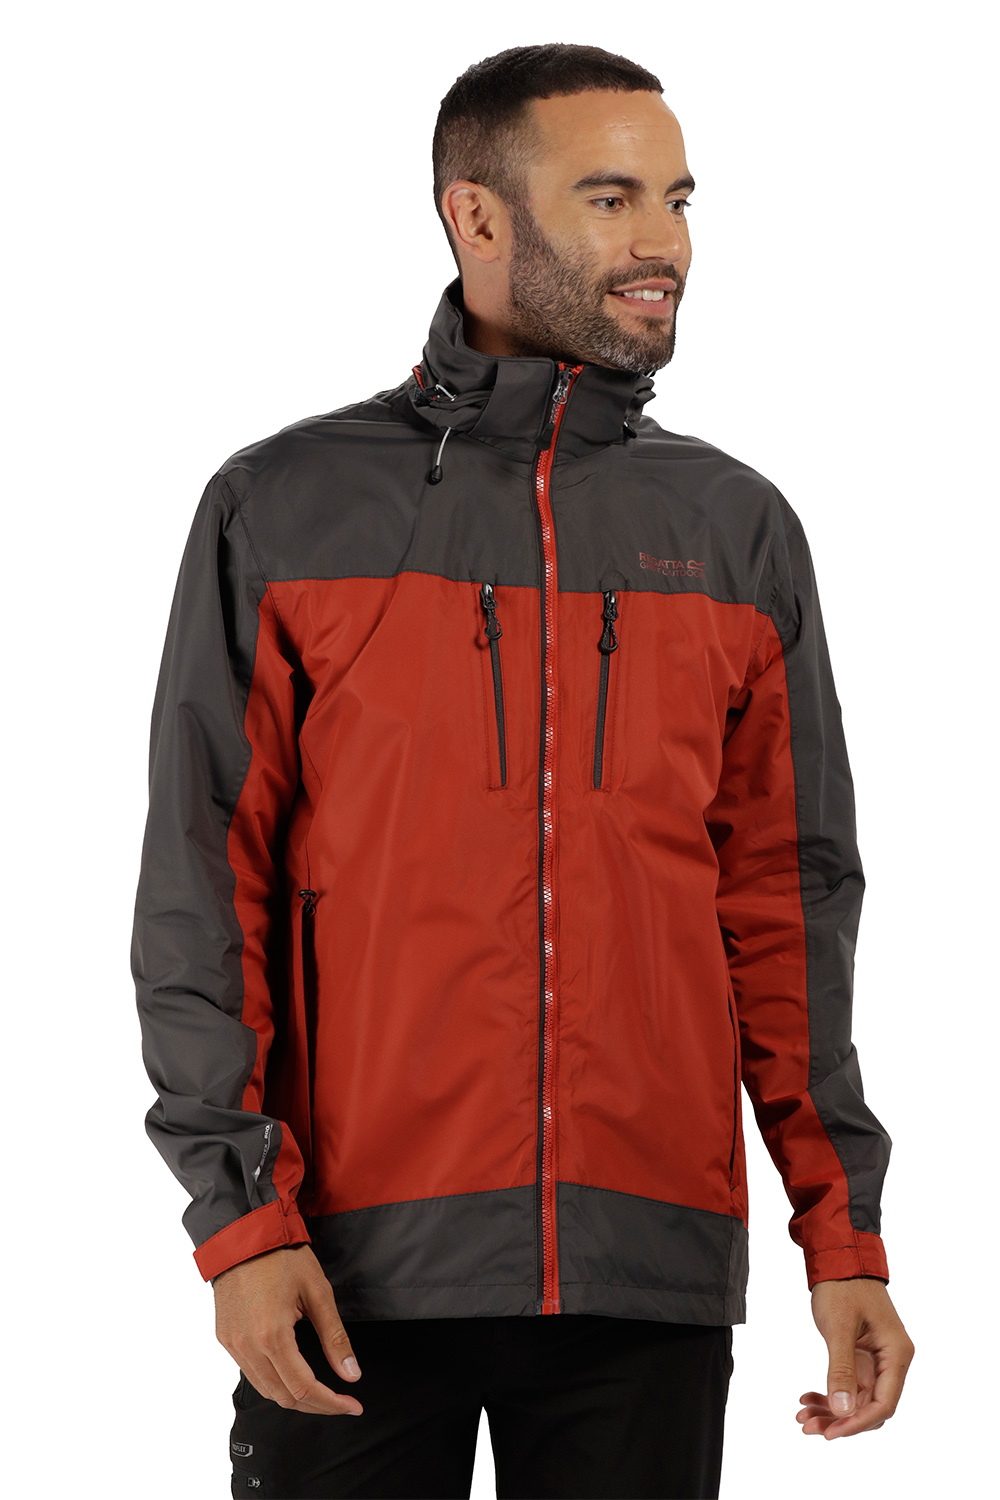 Regatta-Mens-Calderdale-II-Jacket-Waterproof-Breathable-Isotex-5000-Hooded-Coat thumbnail 15